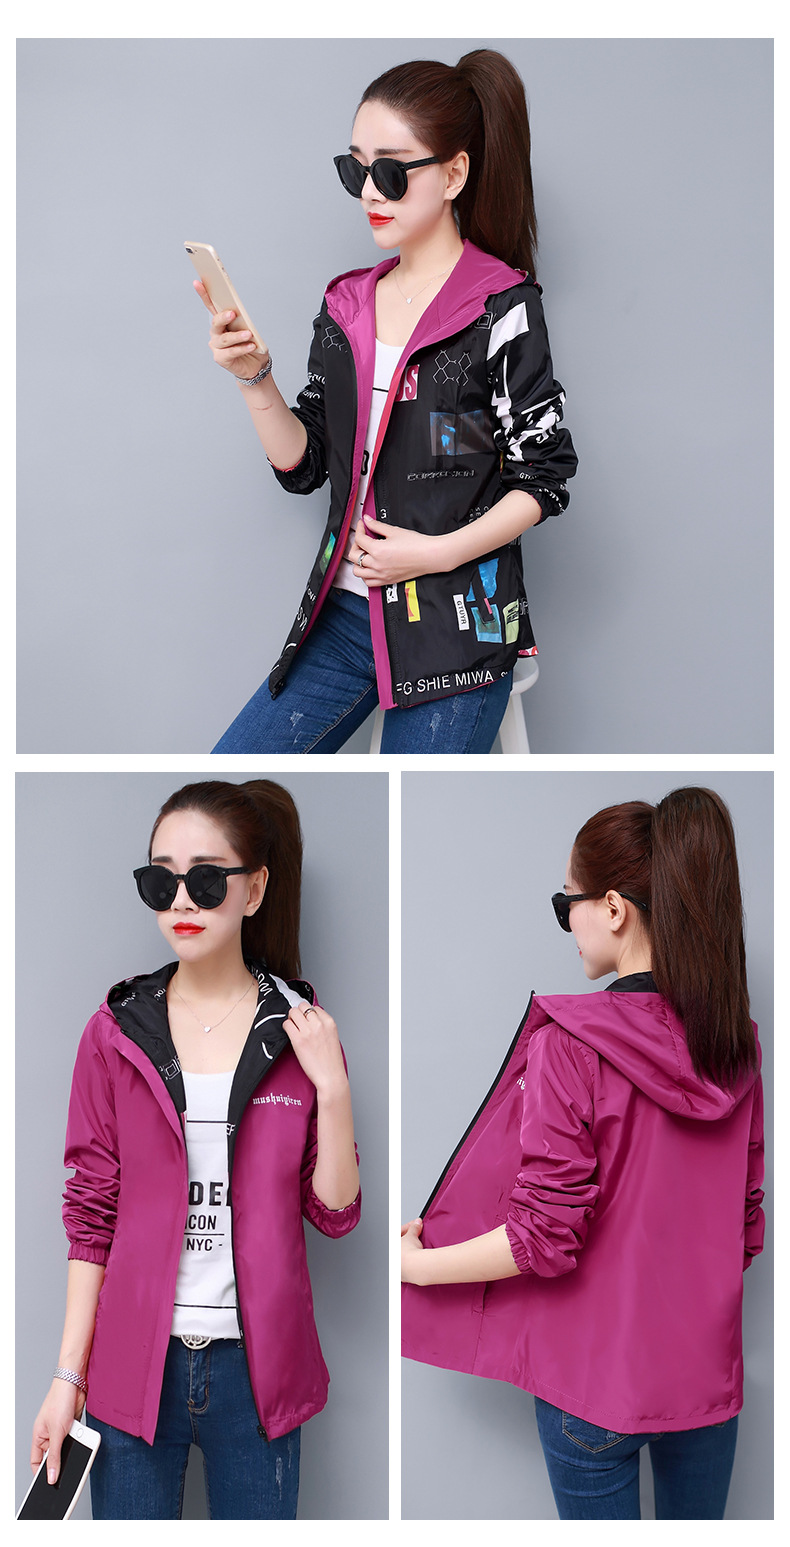 H7253e964f4dc494899eb81e285291210C Streetwear Hooded Printed jacket women And Causal windbreaker Basic Jackets 2019 New Reversible baseball Zippers jacket 4XL